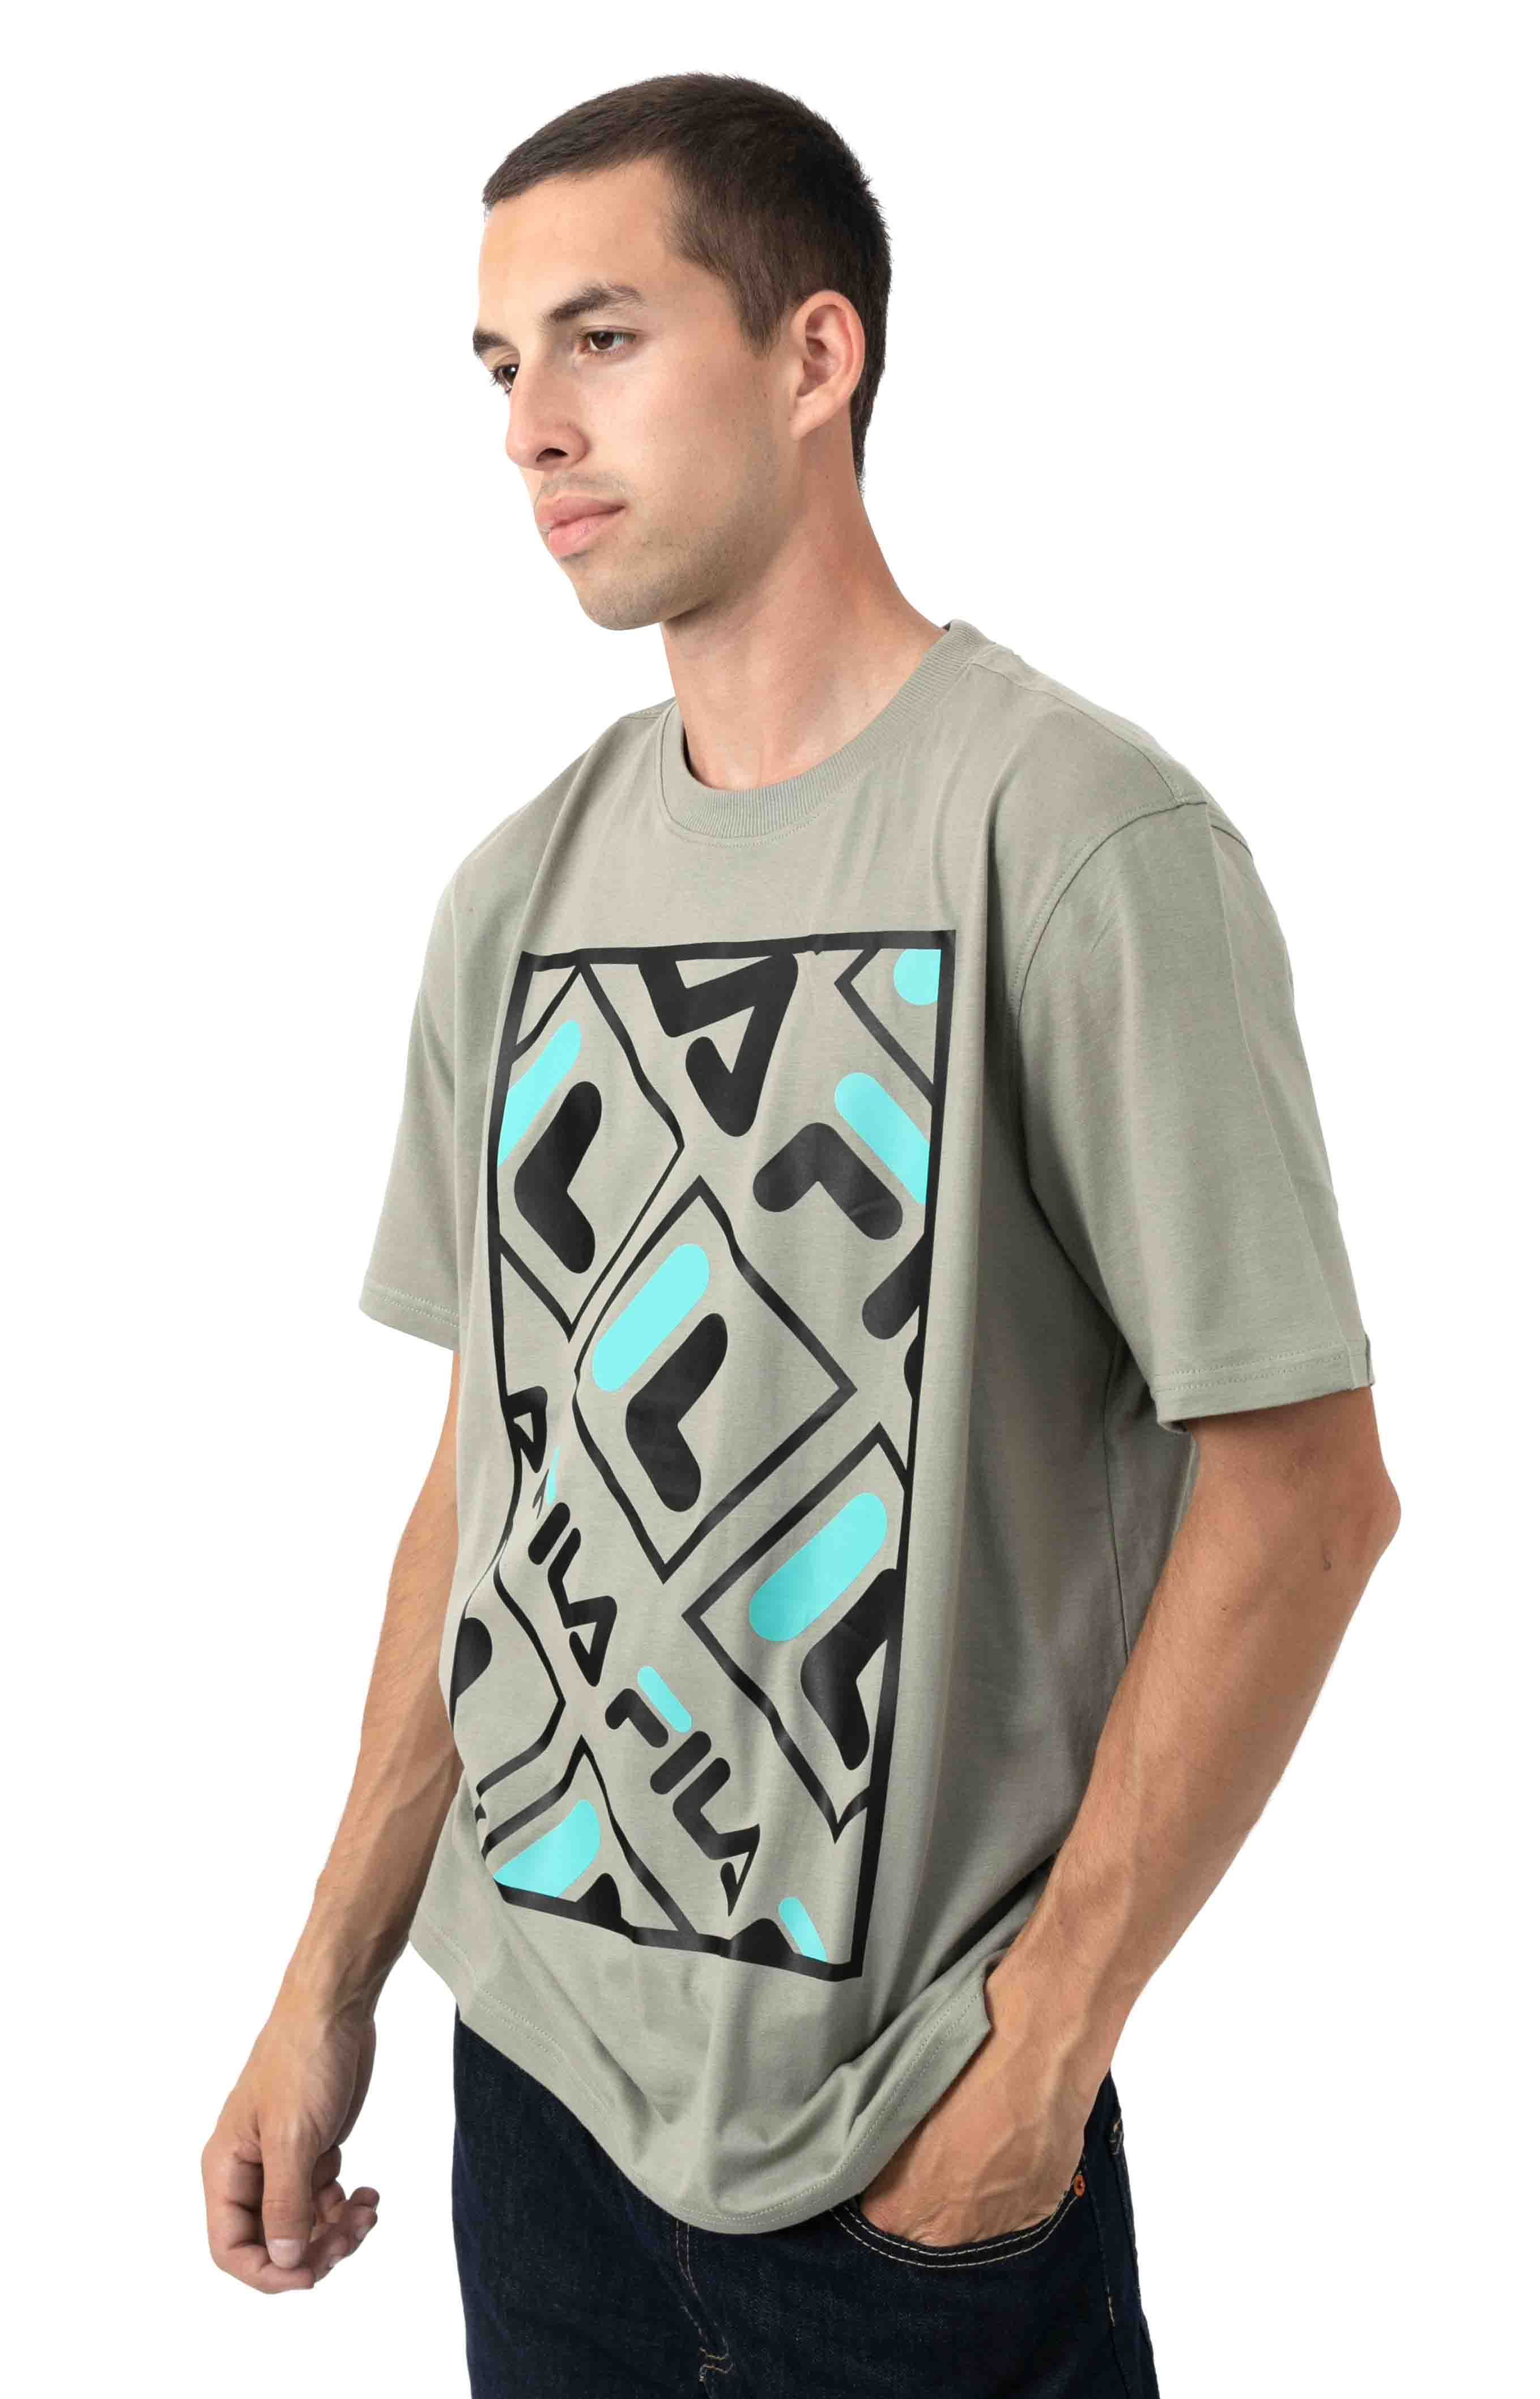 Jalen T-Shirt - Vetiver/Black/Blue Turquoise  2